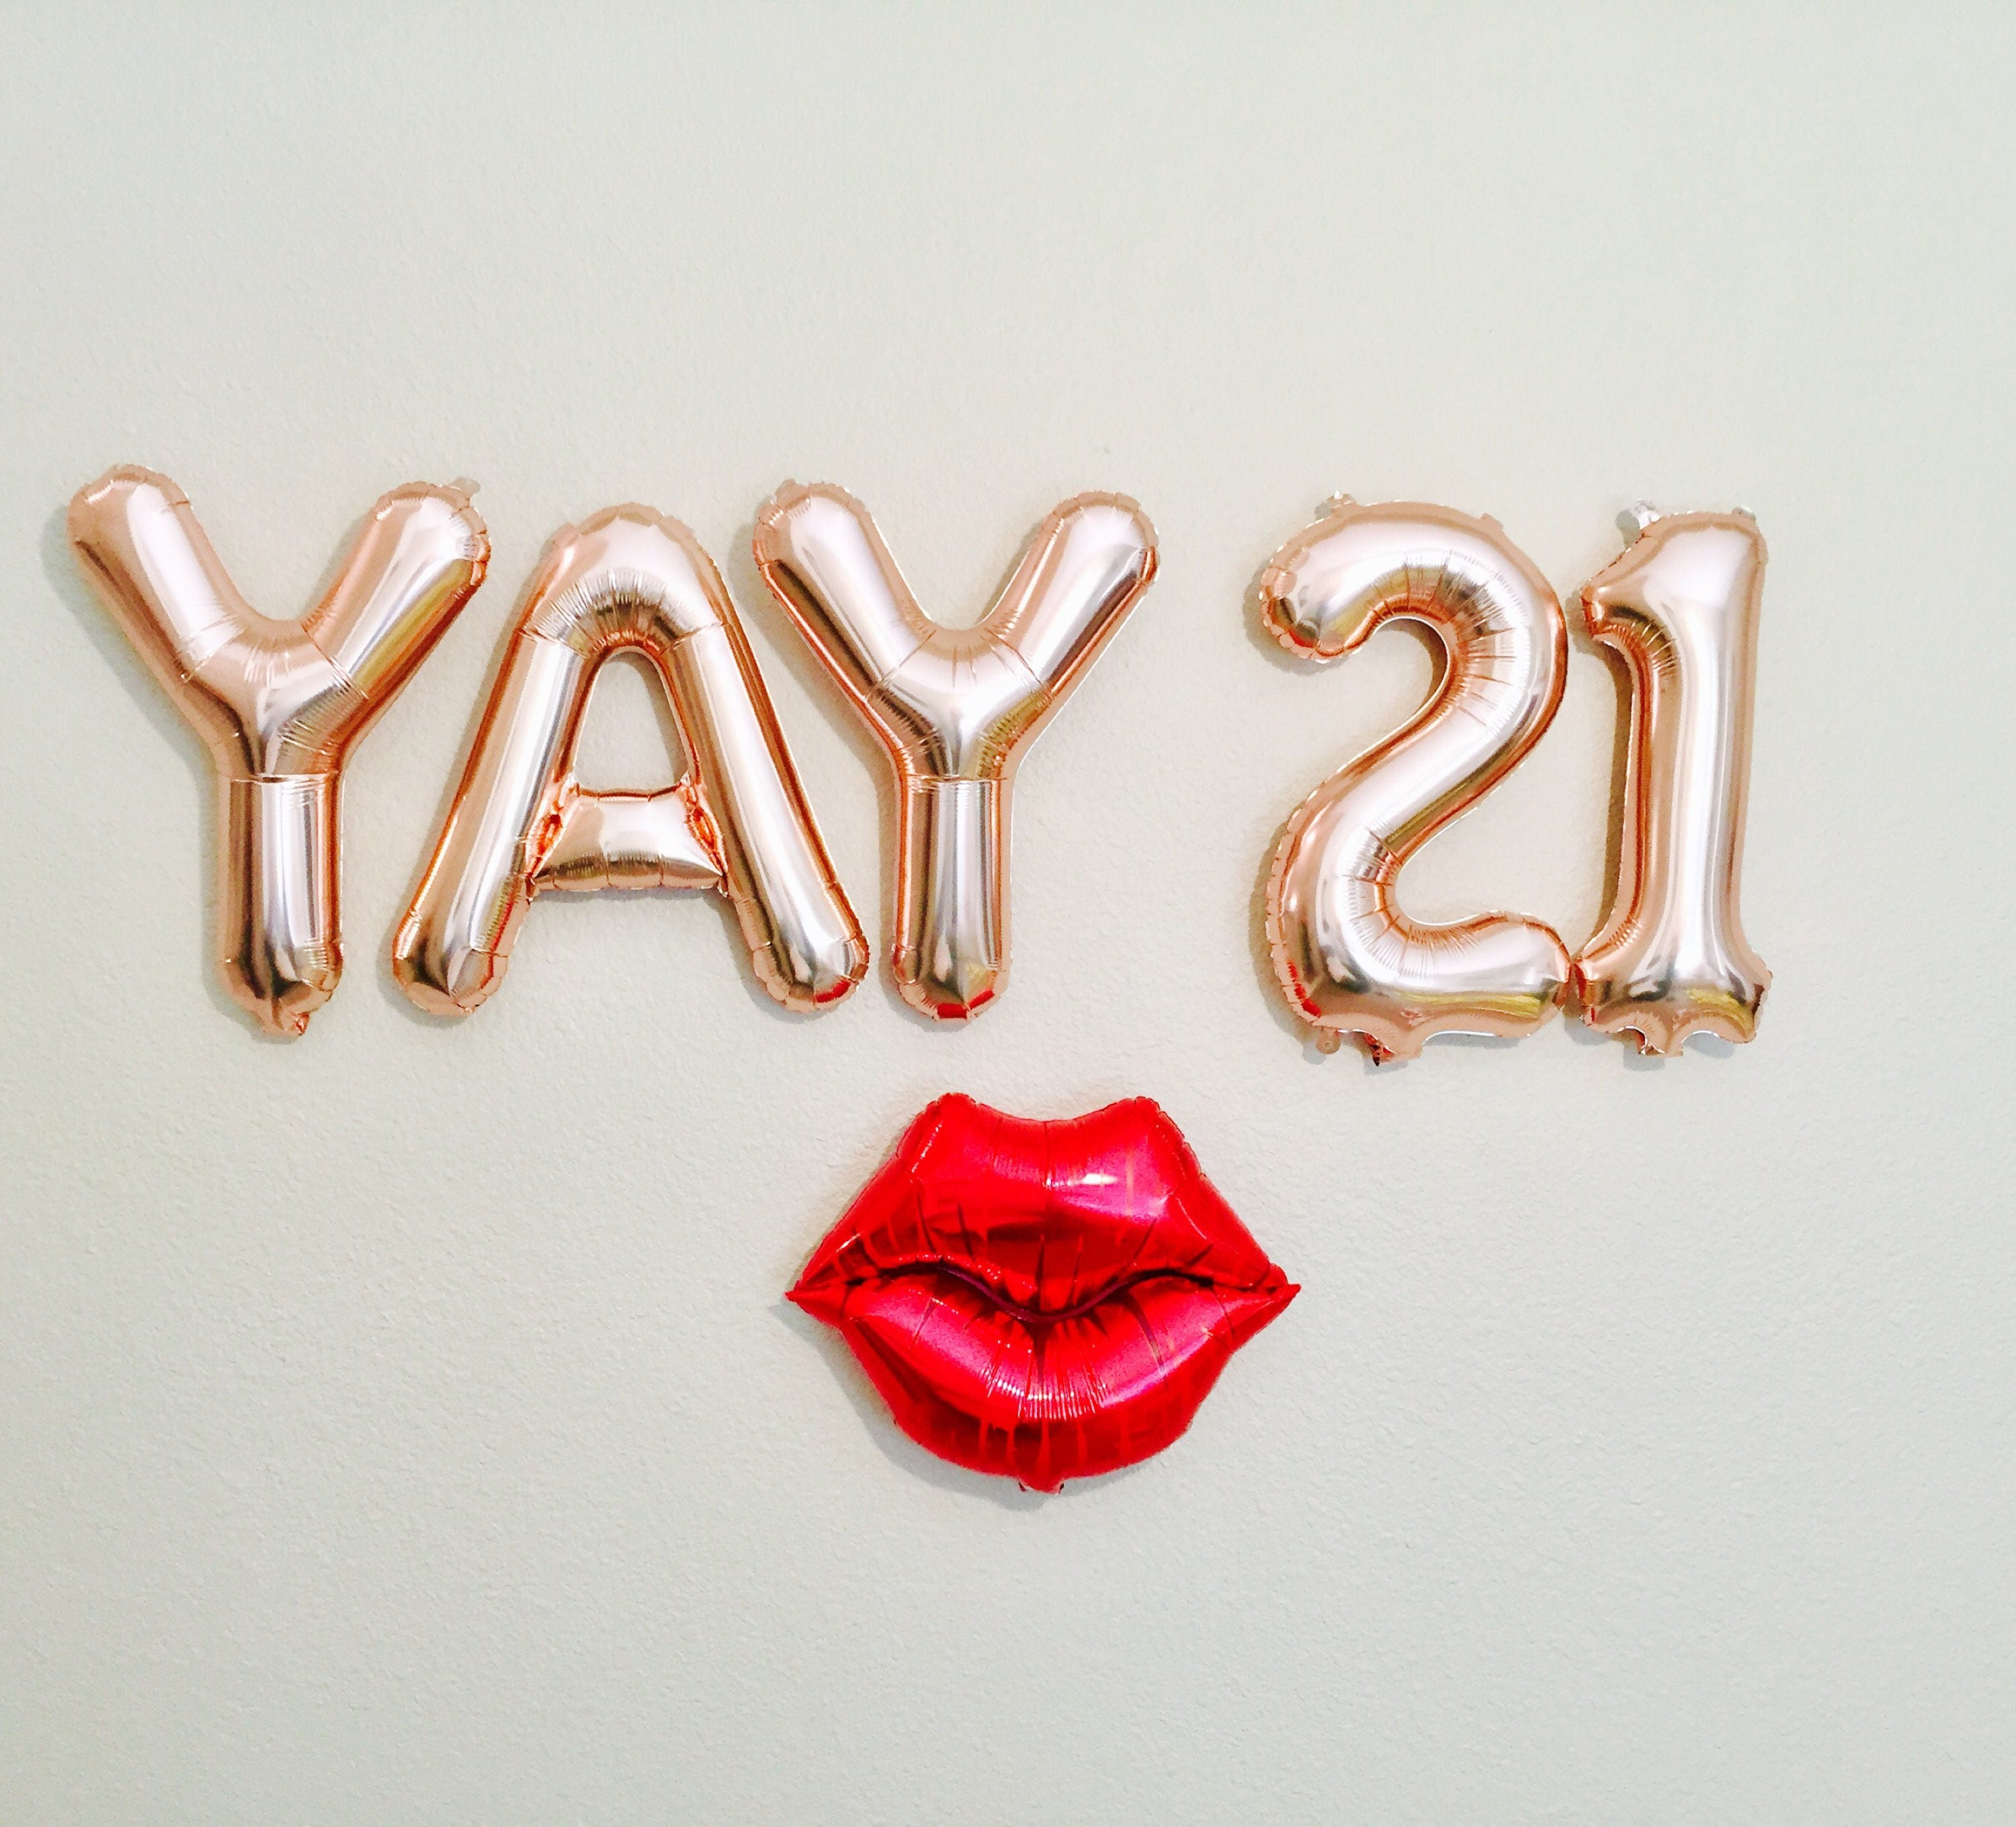 YAY 21 Balloons Number 21 Balloons 21st Birthday Photo Prop on